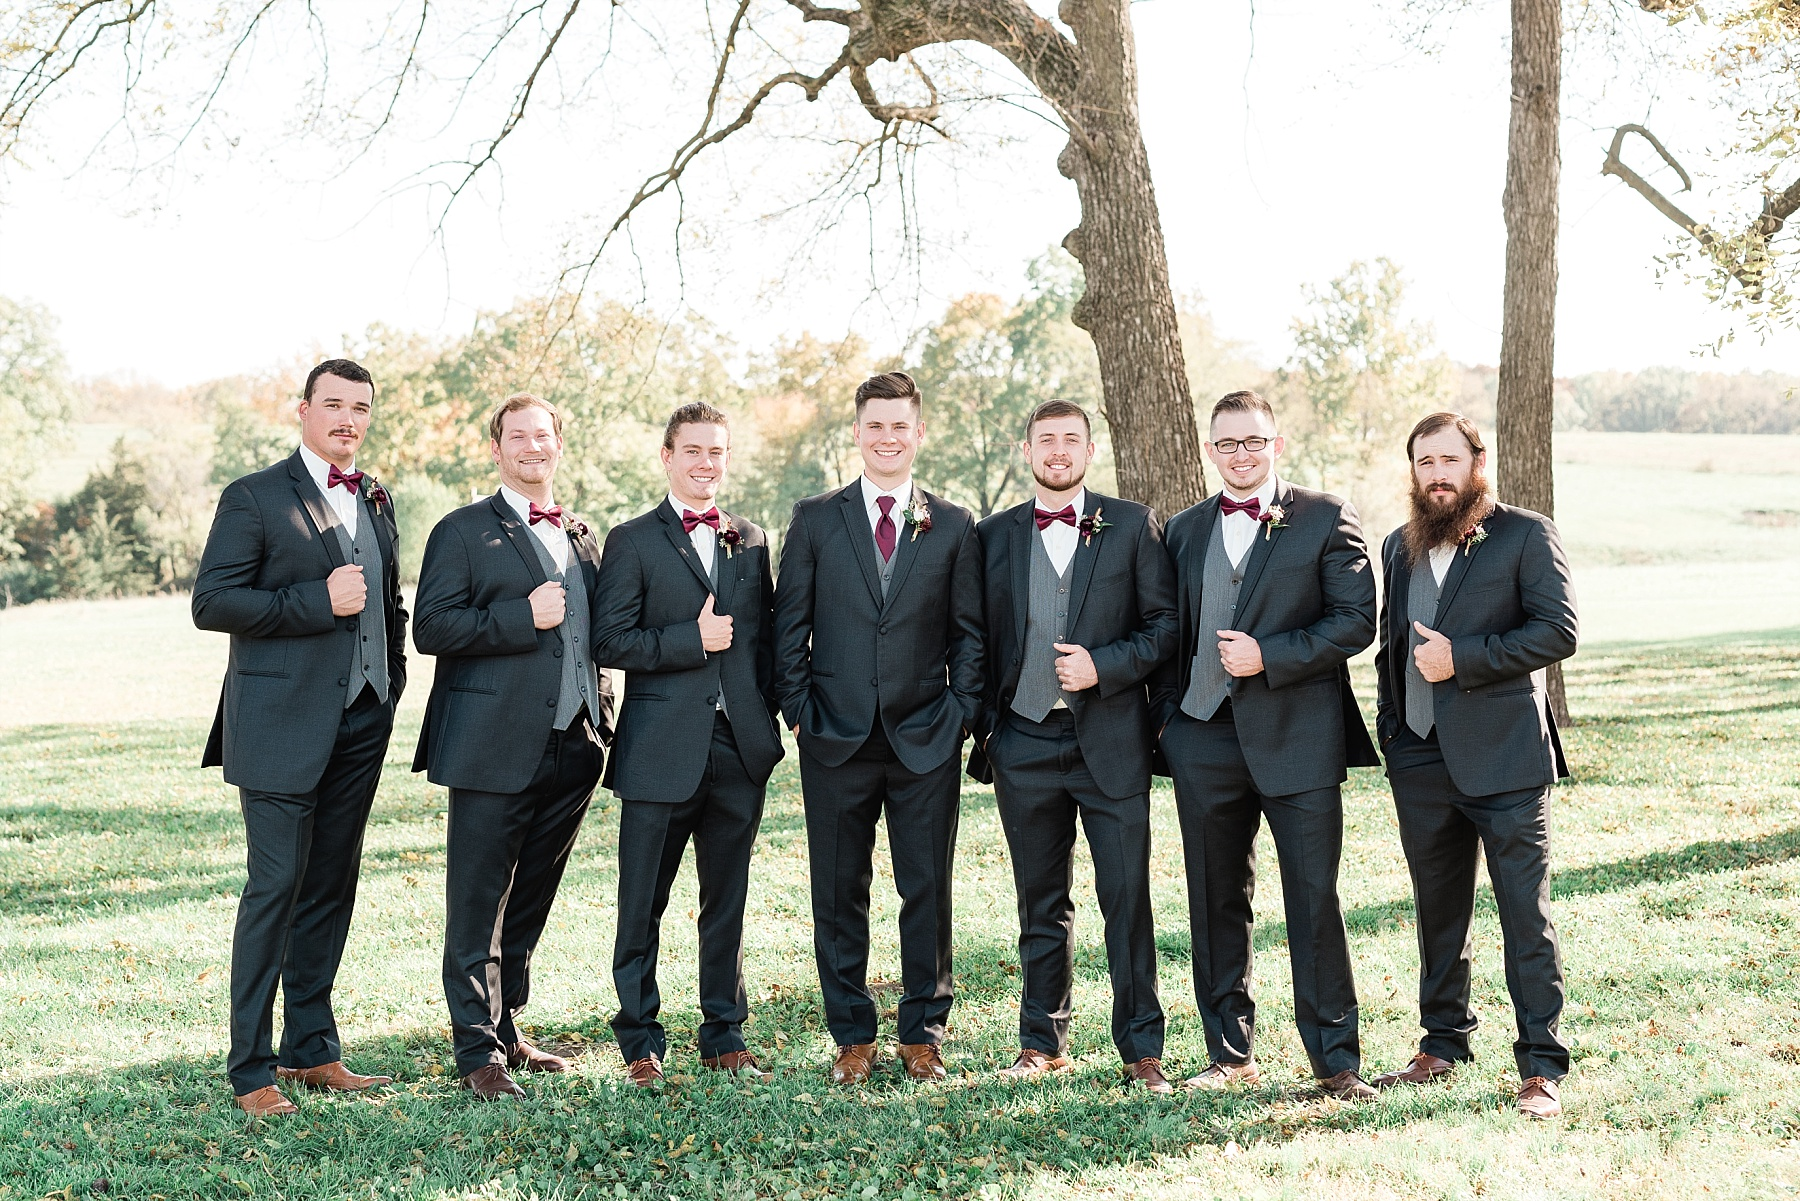 Golden Autumn Outdoor Wedding with Ivory, Bergundy, and Blush Color Palette at Blue Bell Farms  by Kelsi Kliethermes Photography_0016.jpg